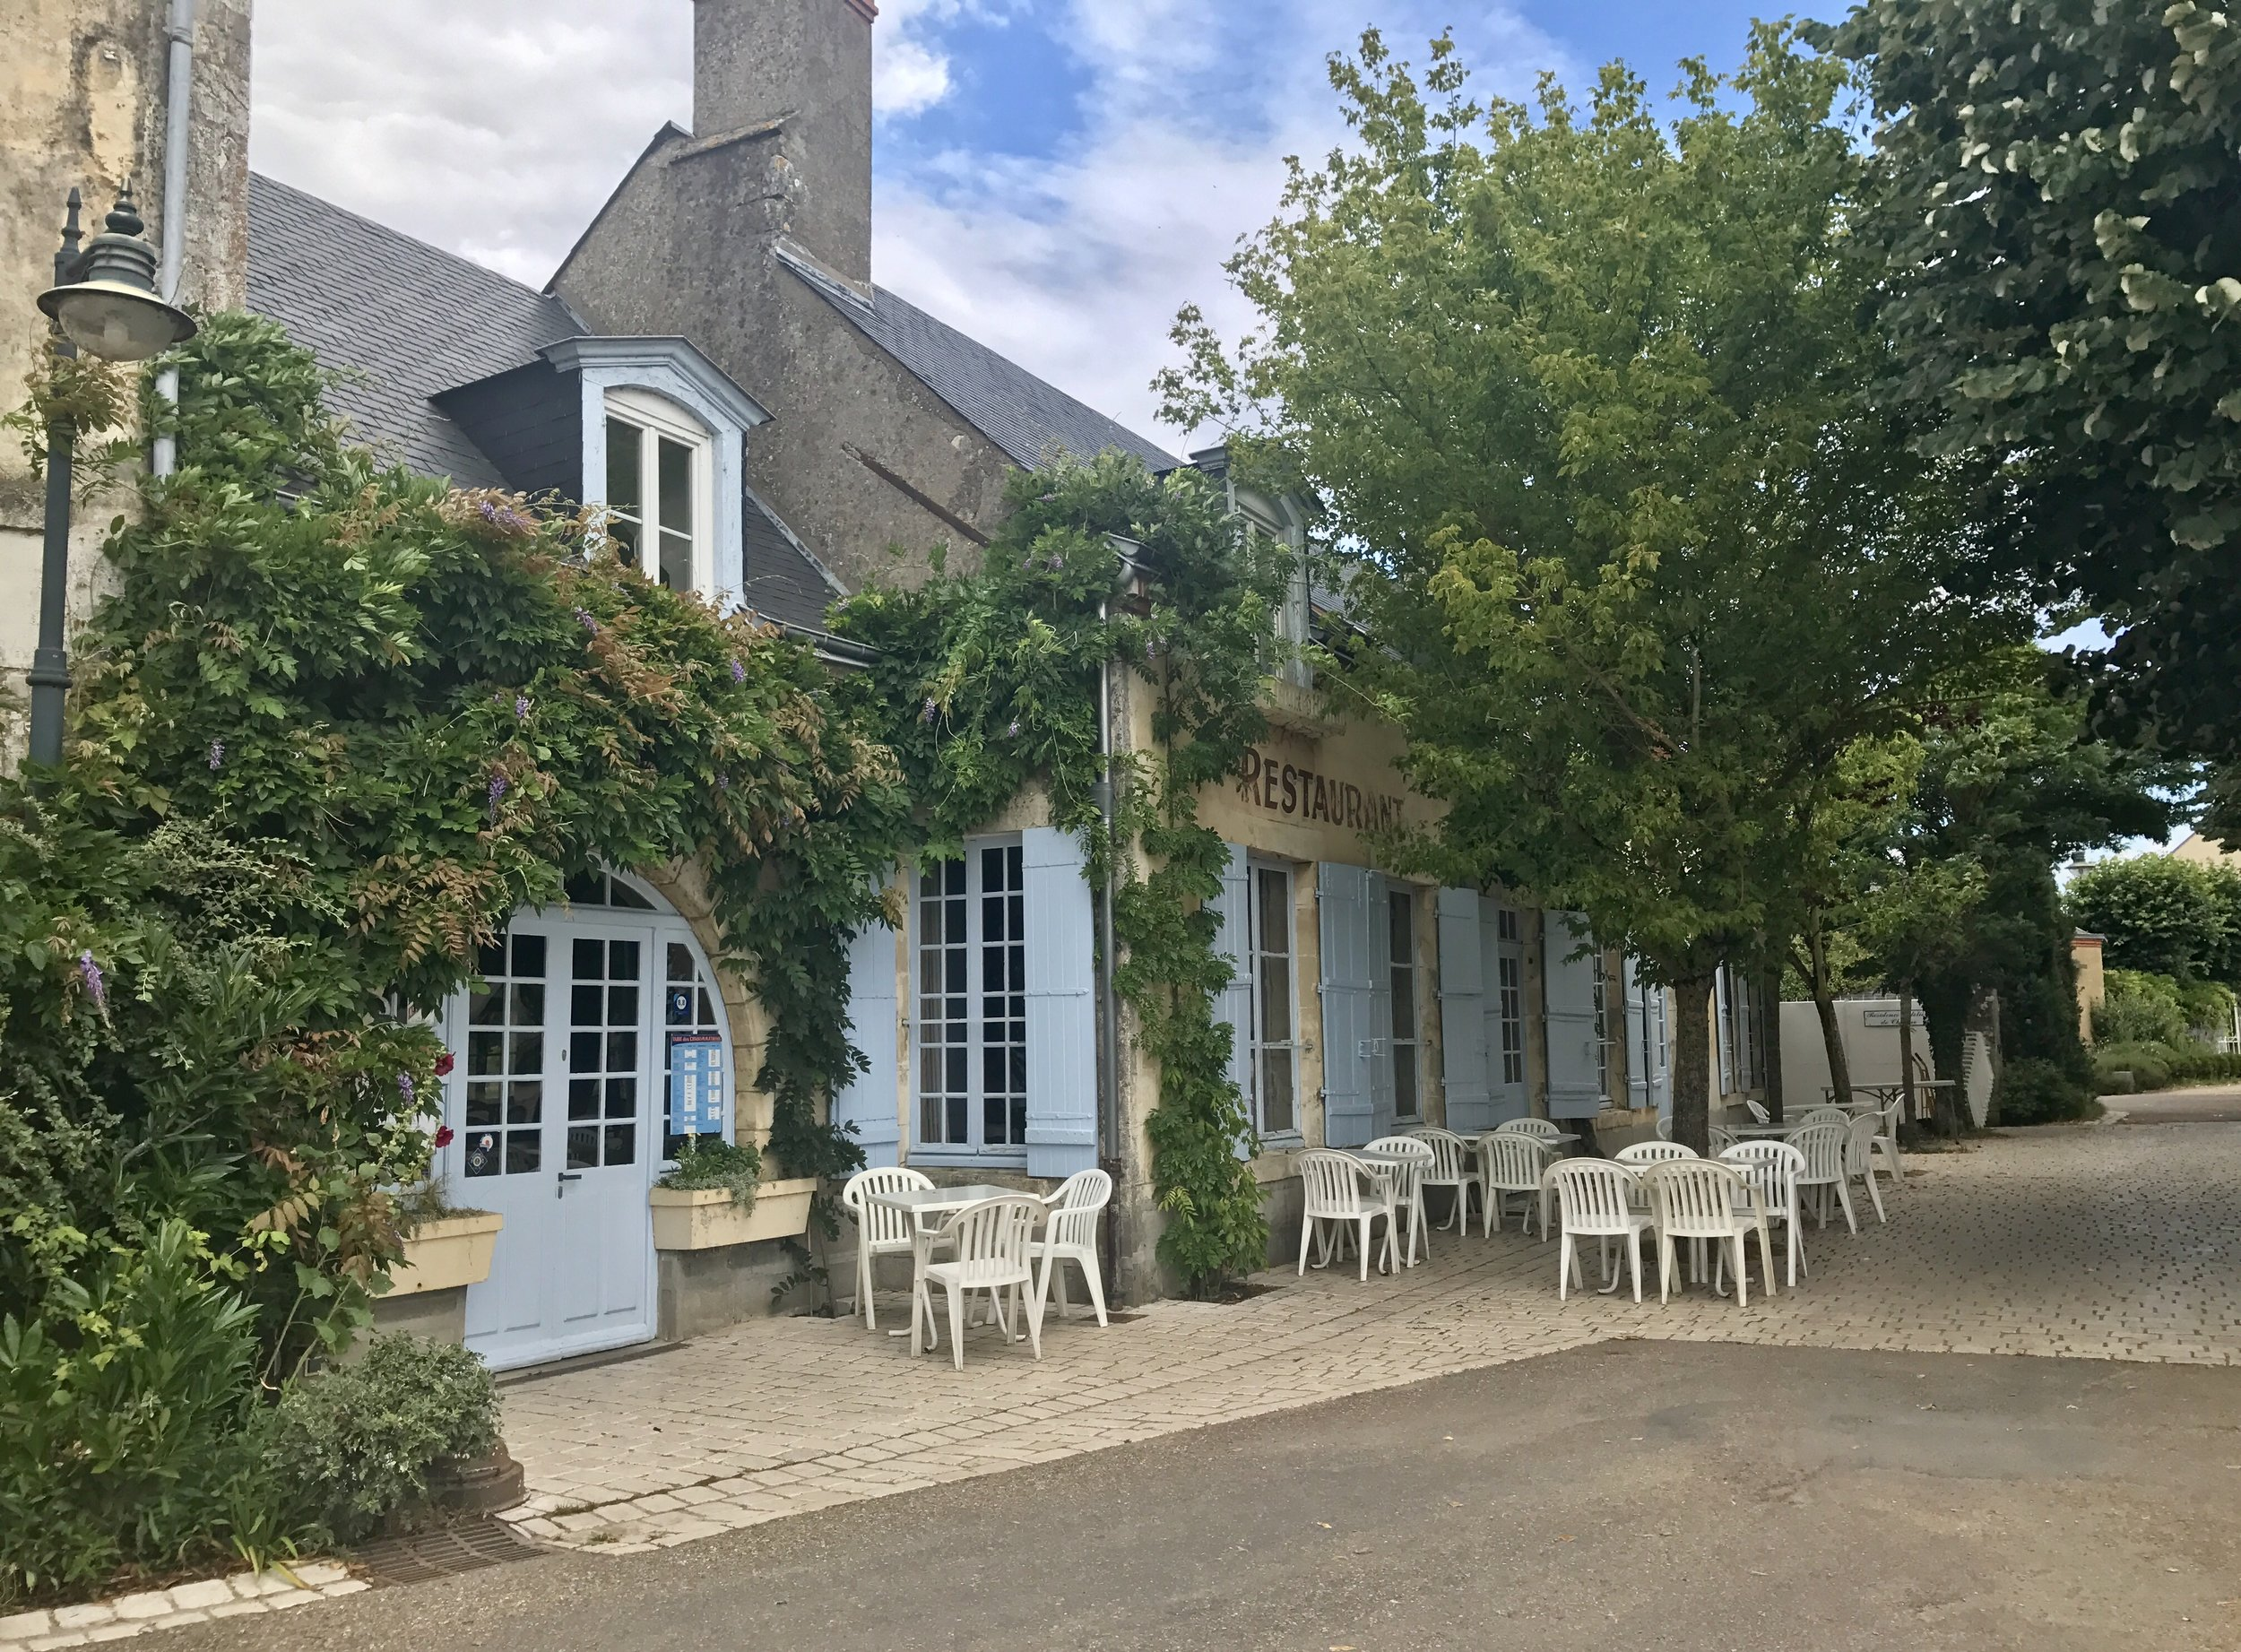 La Marine restaurant in Combleux, the location of our Airbnb